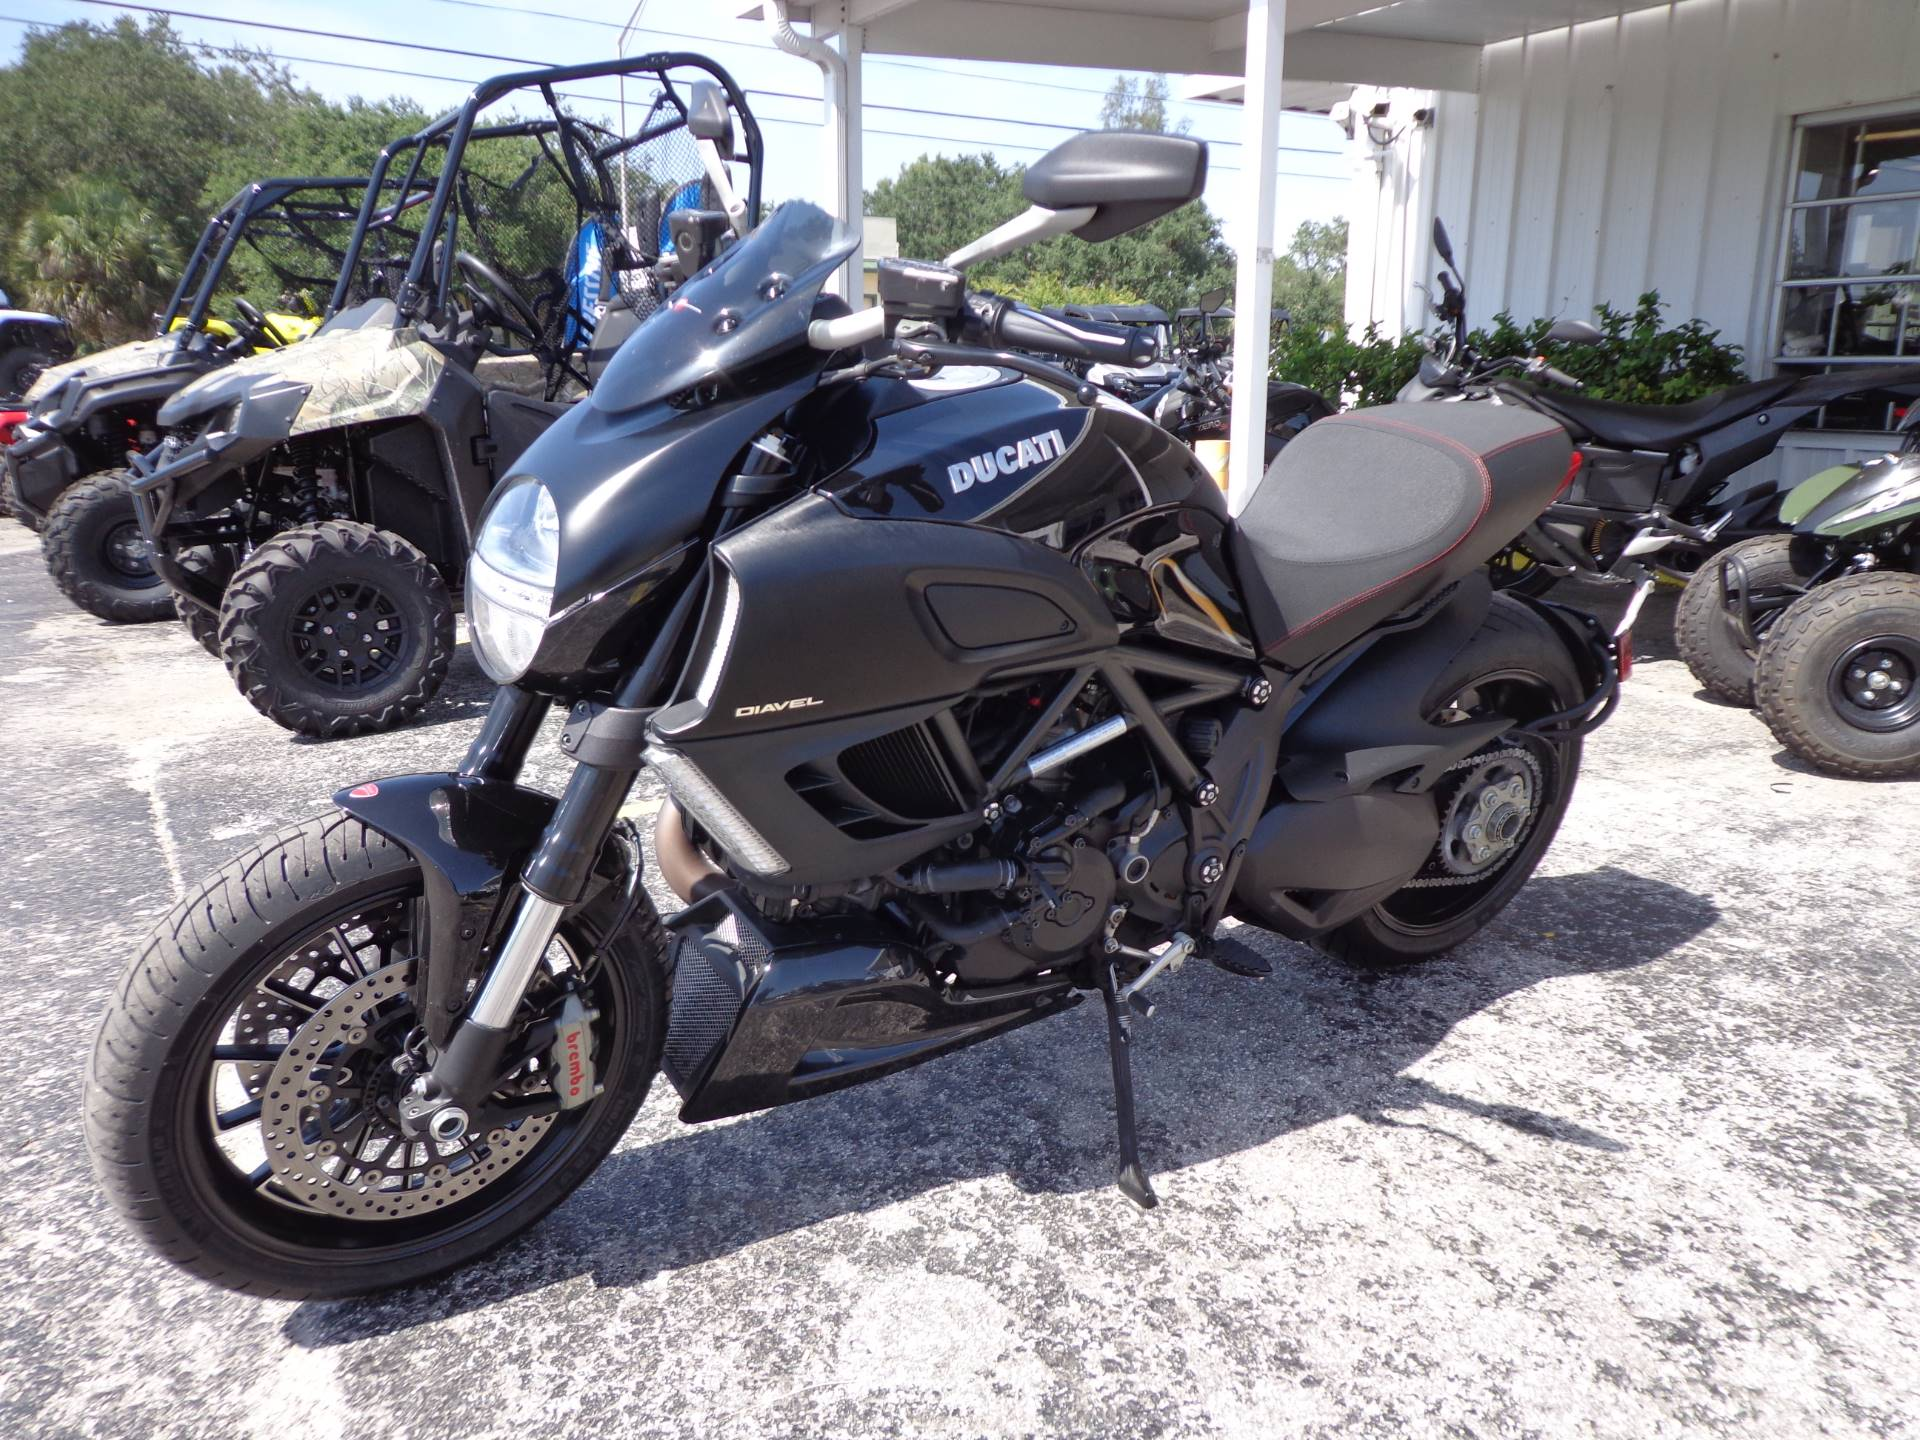 2012 Ducati Diavel in Sarasota, Florida